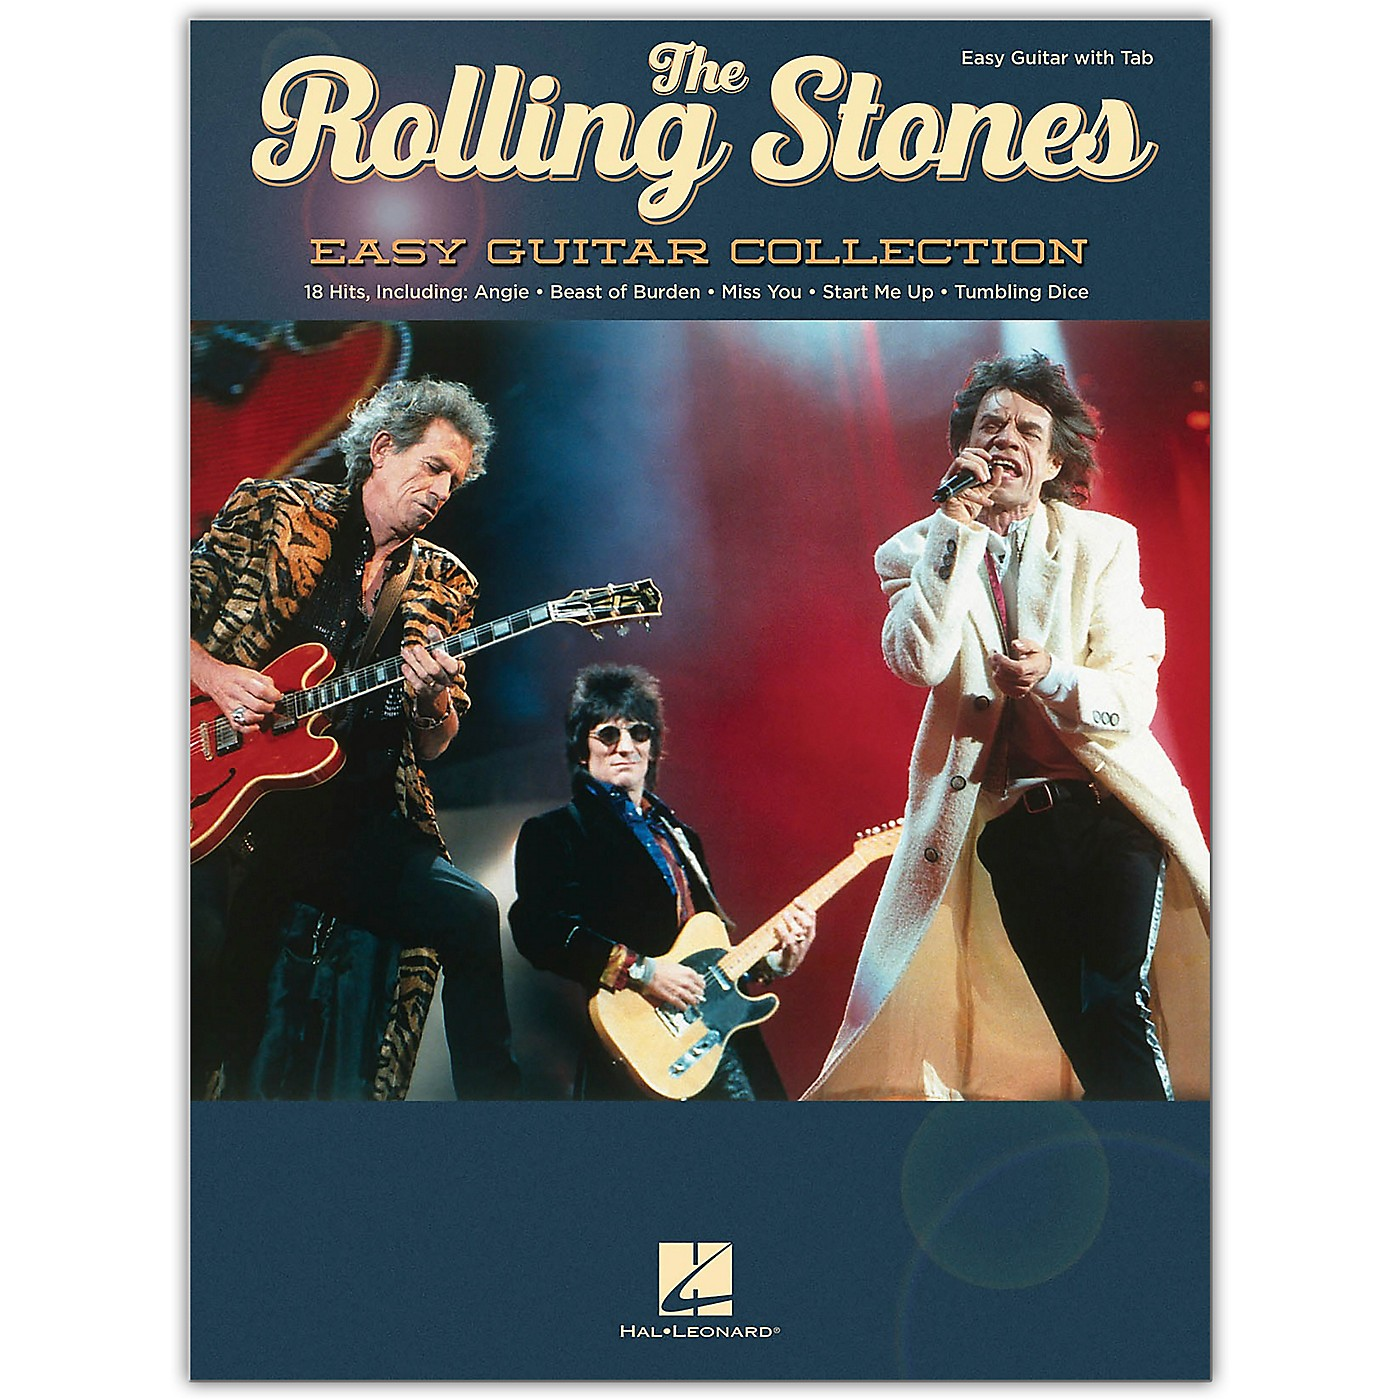 Hal Leonard The Rolling Stones - Easy Guitar Collection Songbook thumbnail